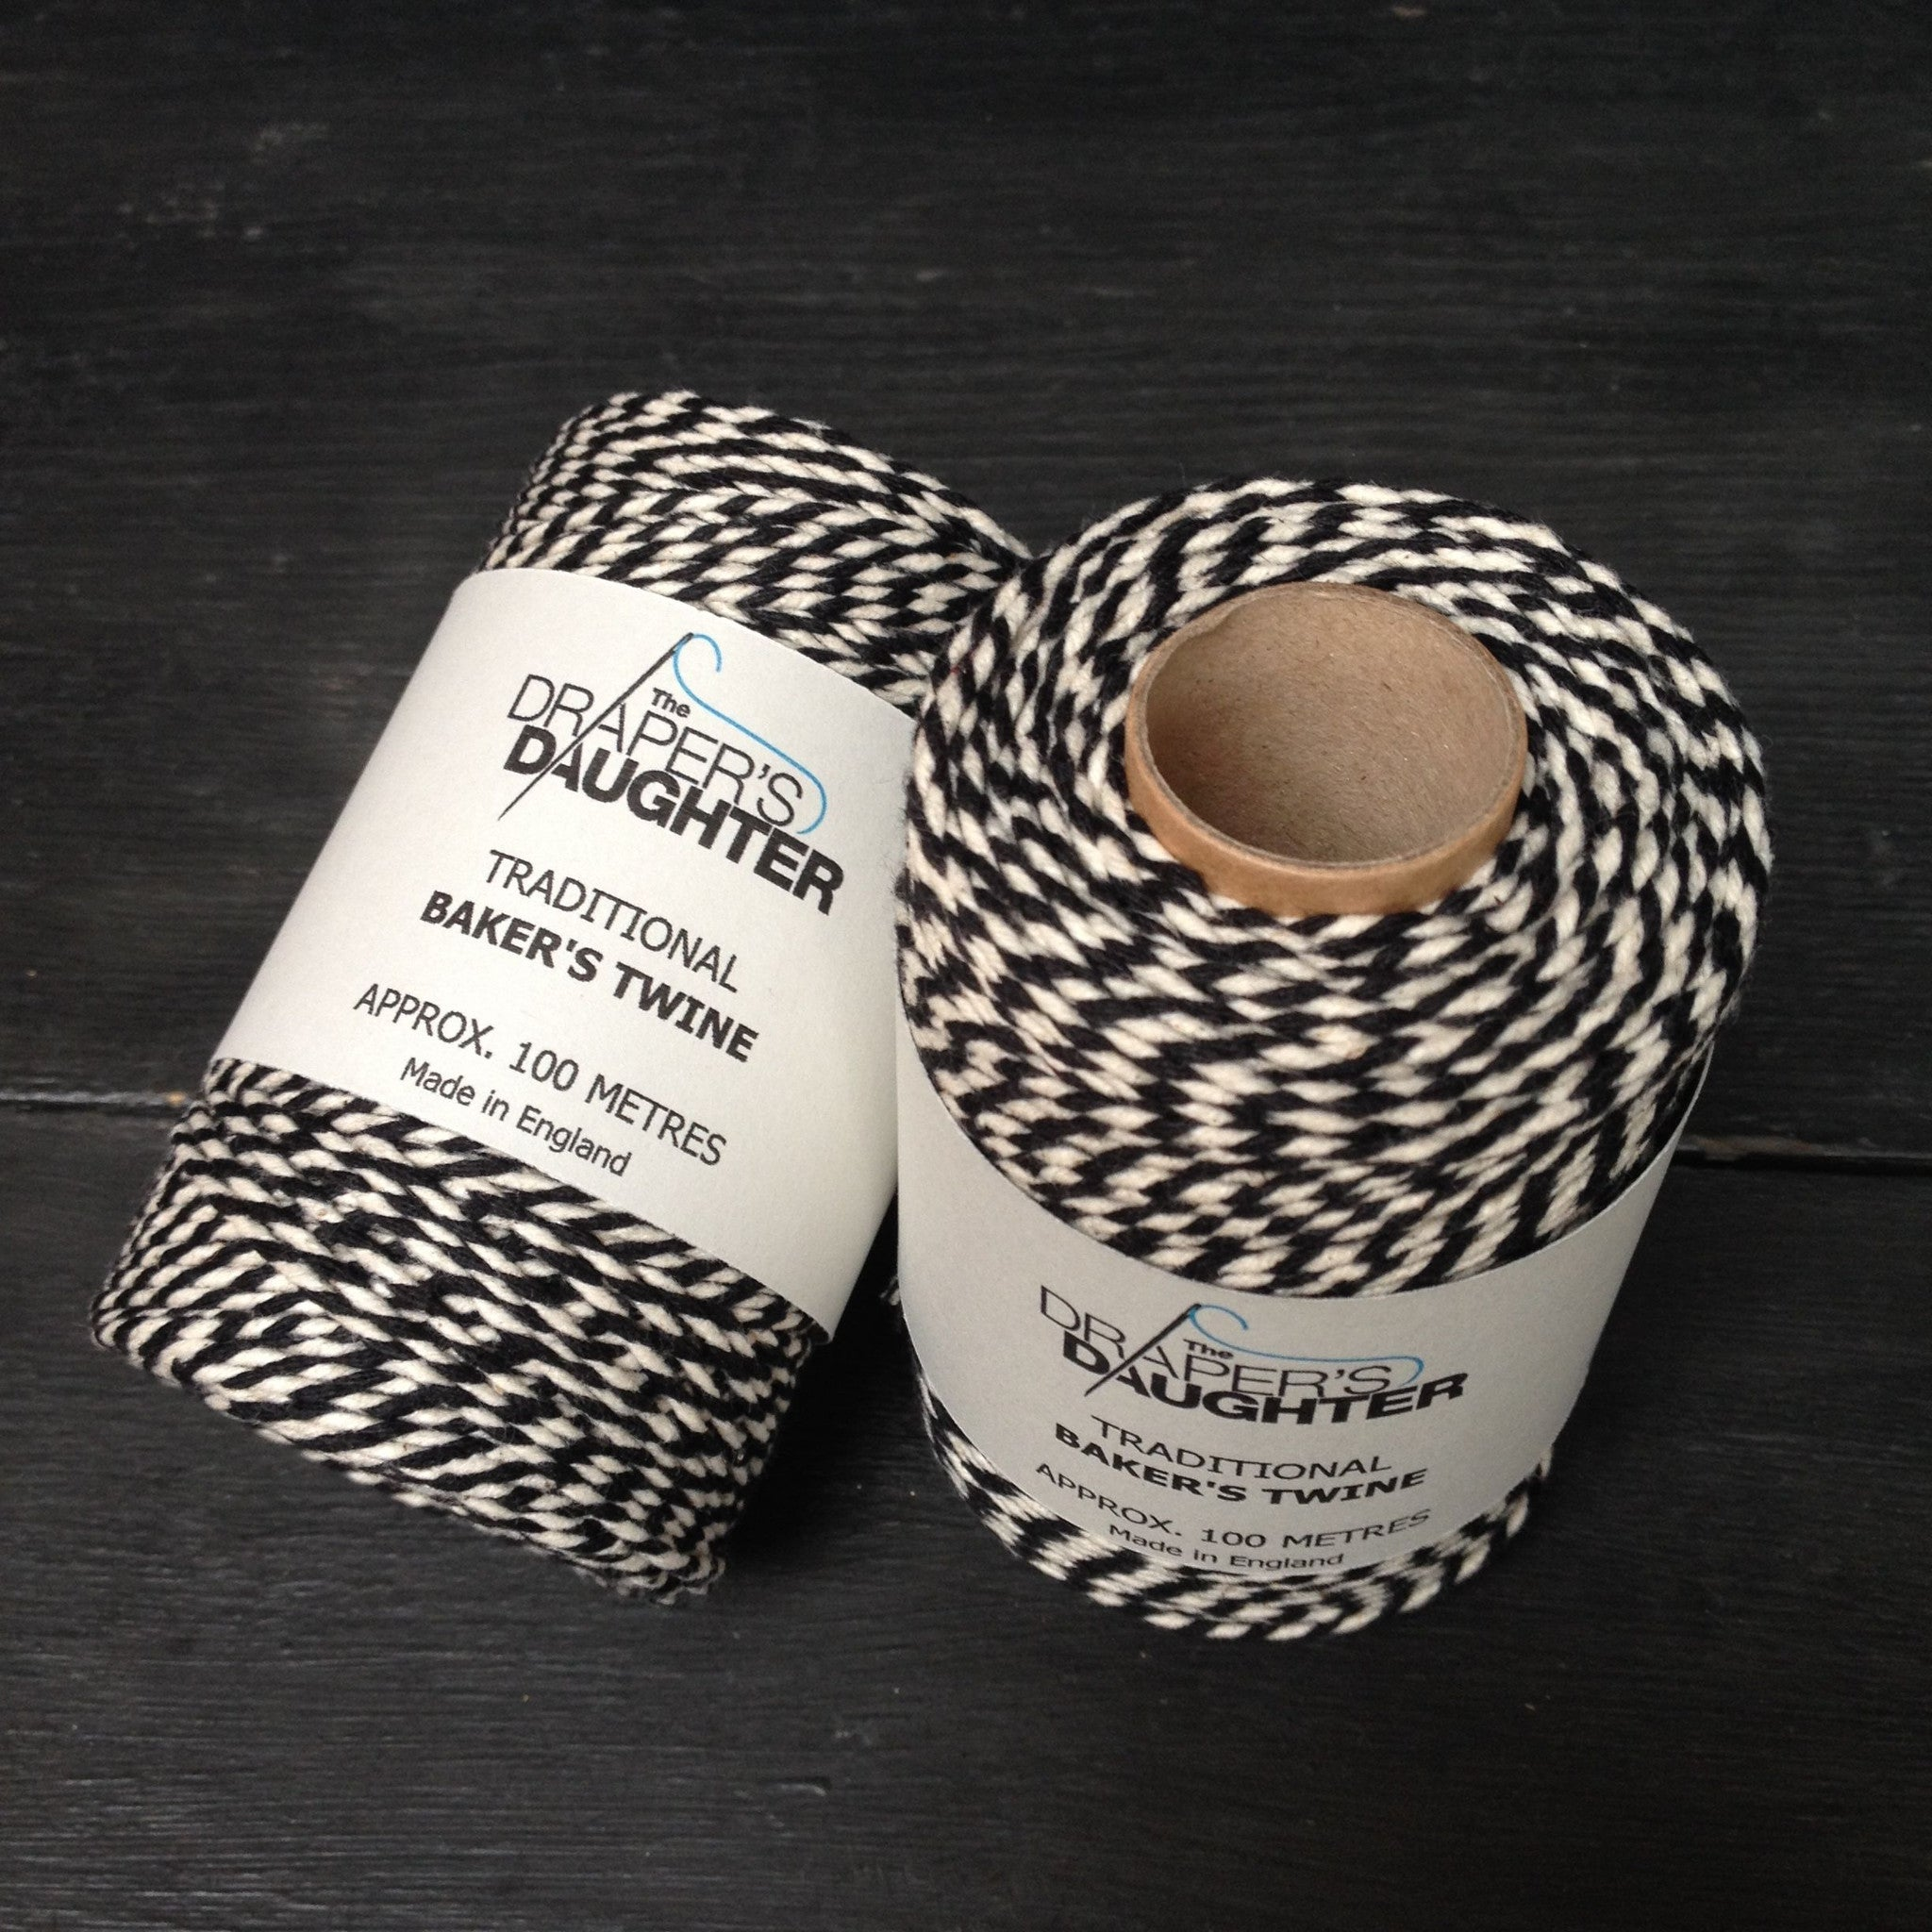 The Draper's Daughter Traditional Baker's Twine in Black